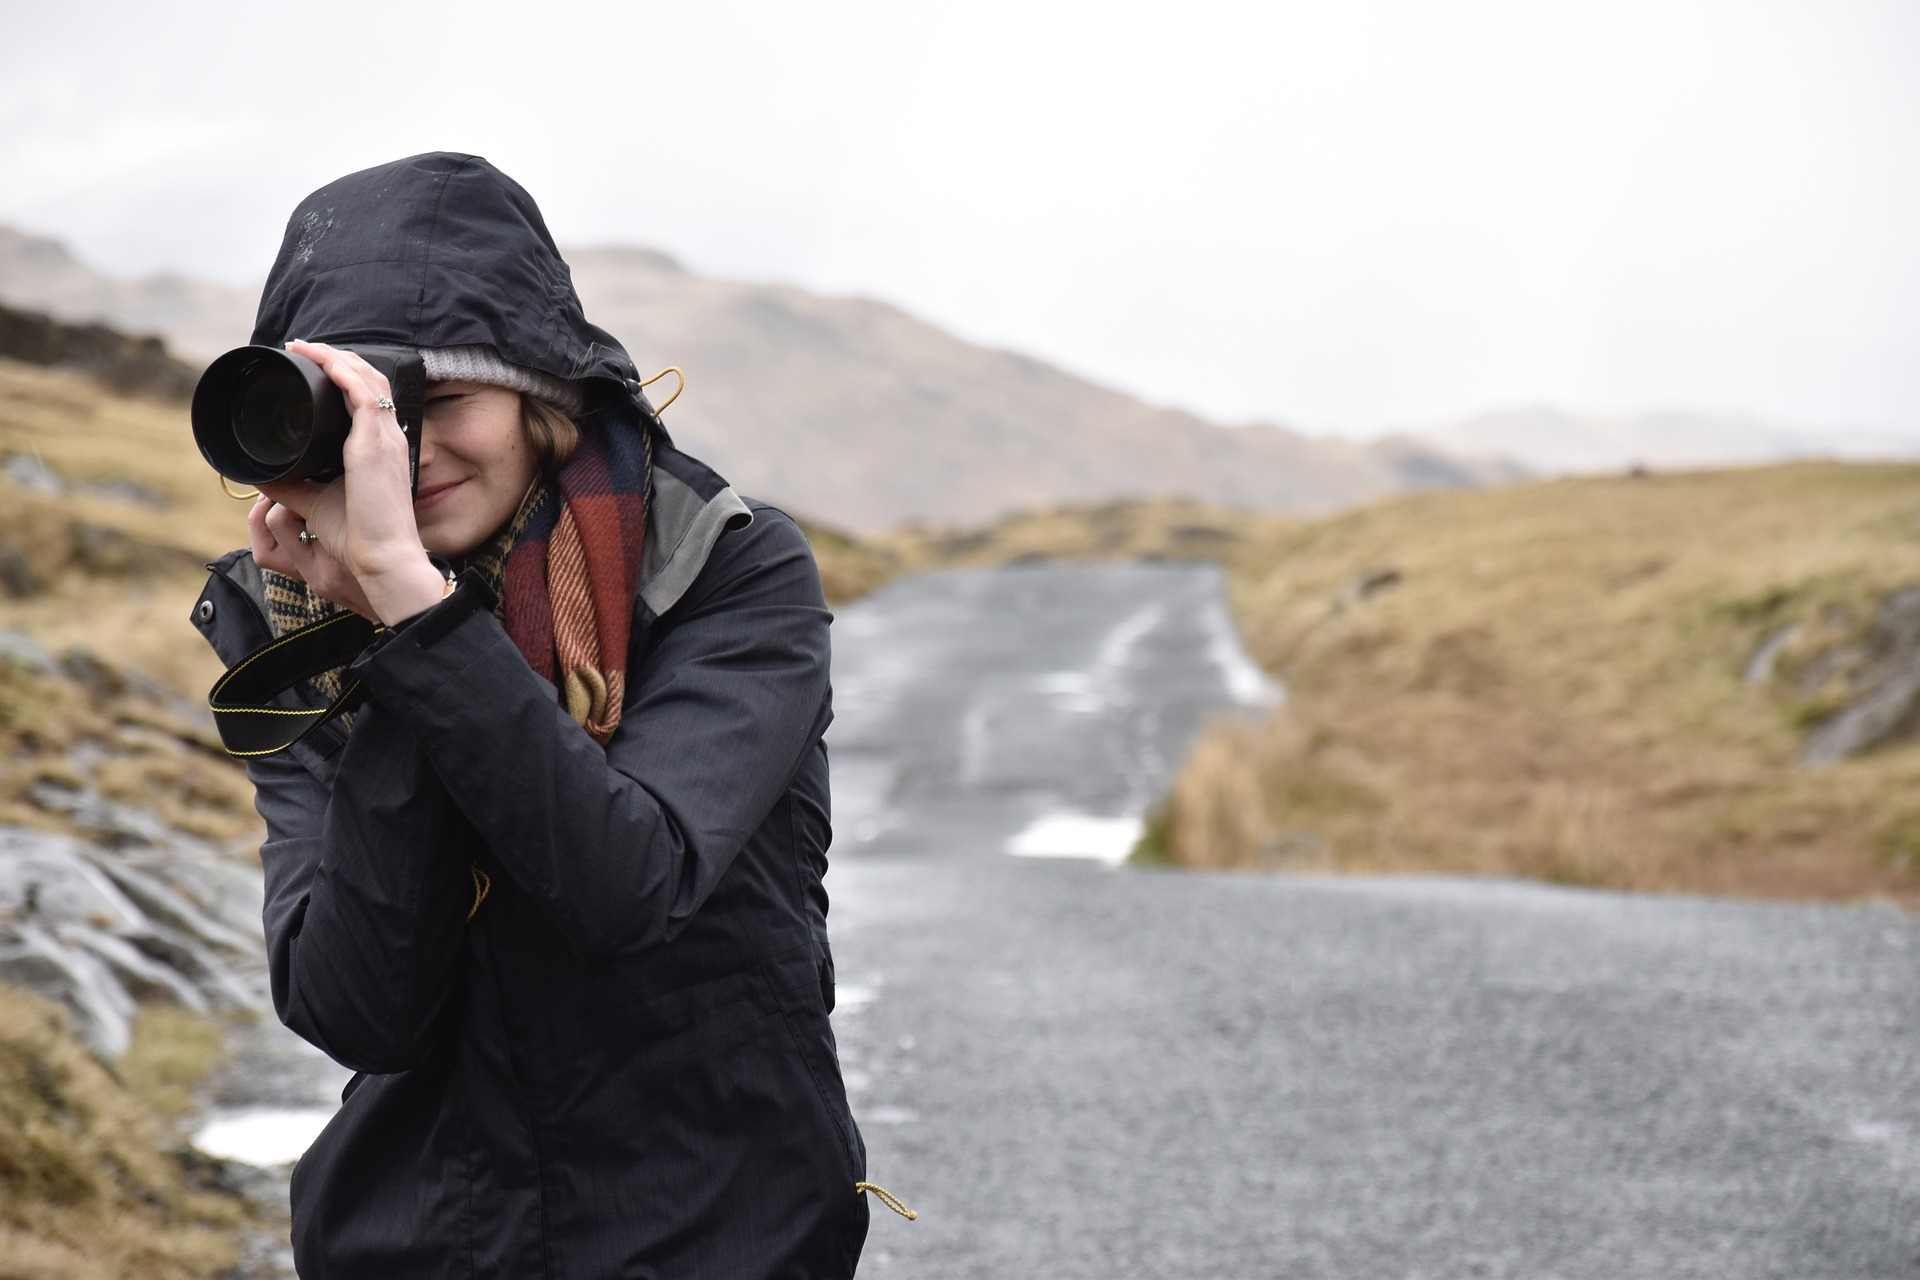 Woman with camera taking pictures in the road